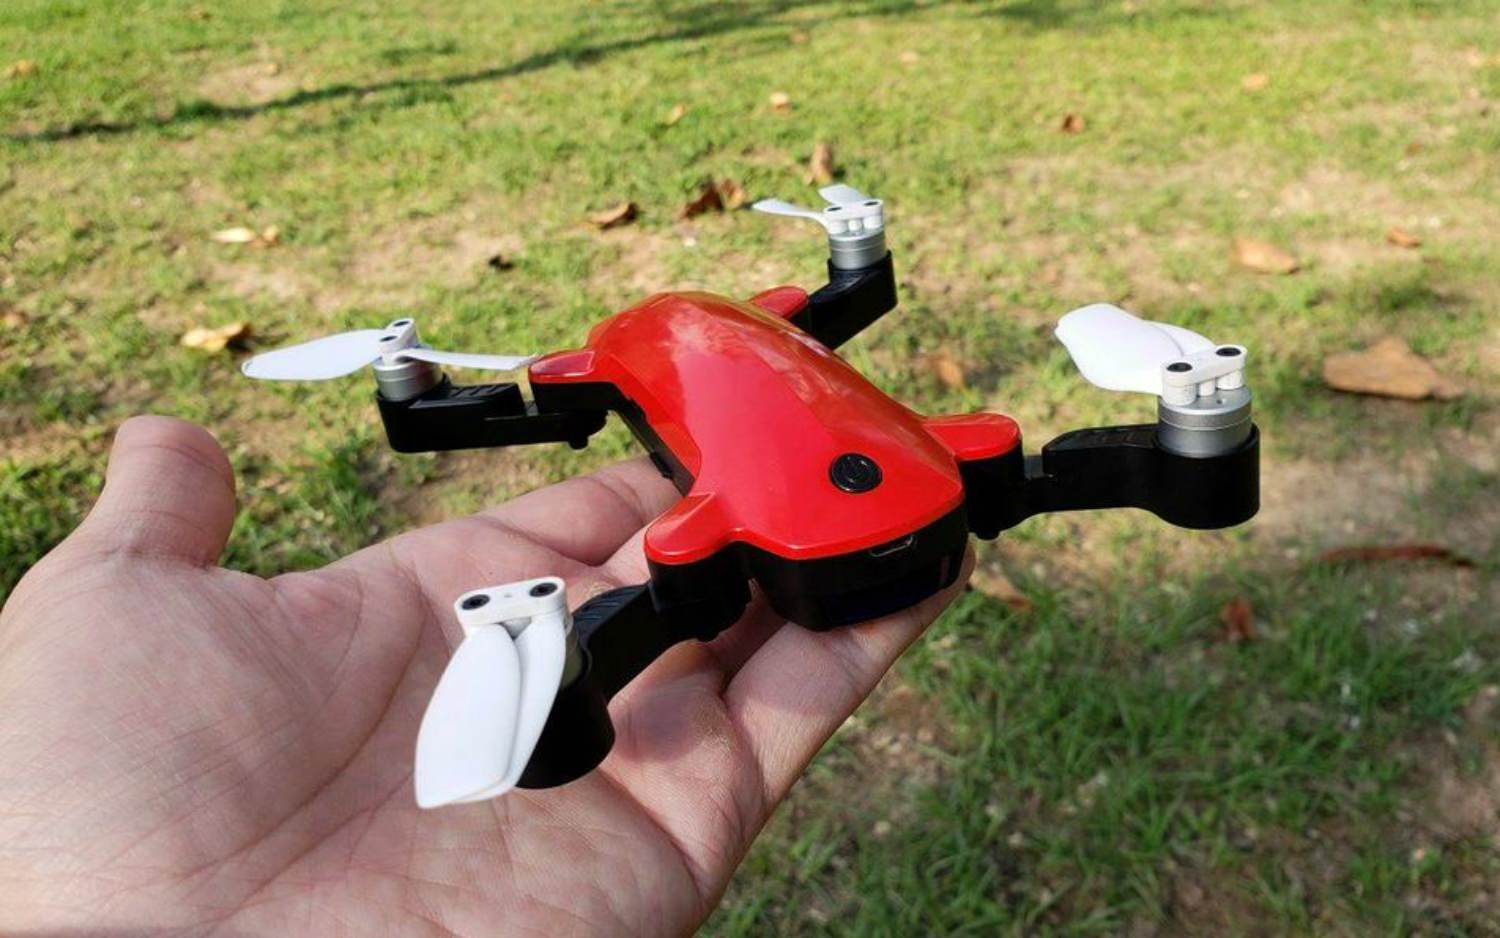 Simtoos Fairy Drone A Small Foldable That Sits In Between The DJI Spark And Tello